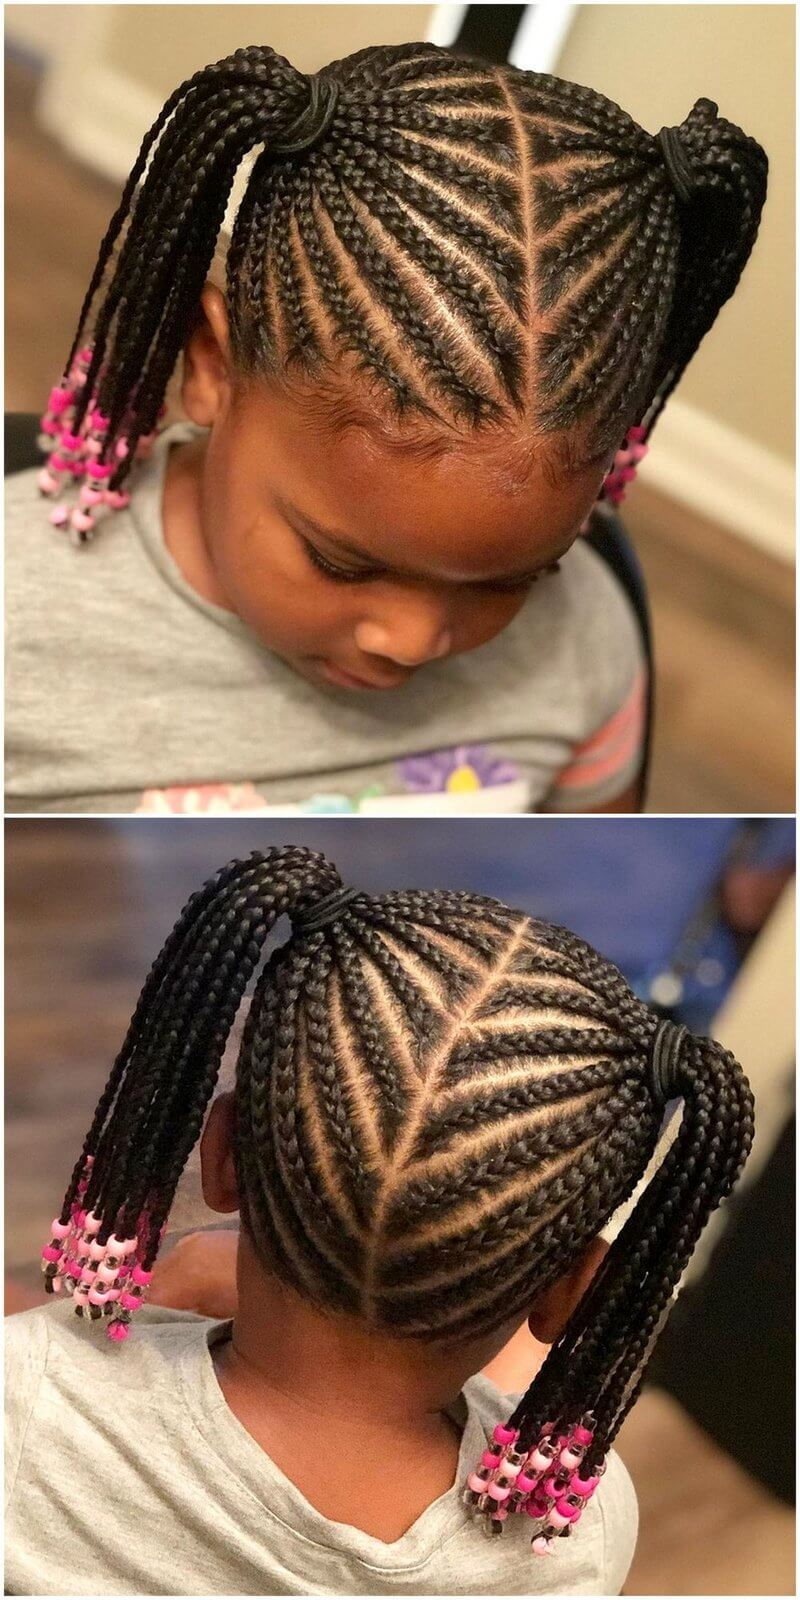 80 Cute Braided Hairstyles For Little Girls | Kids ...